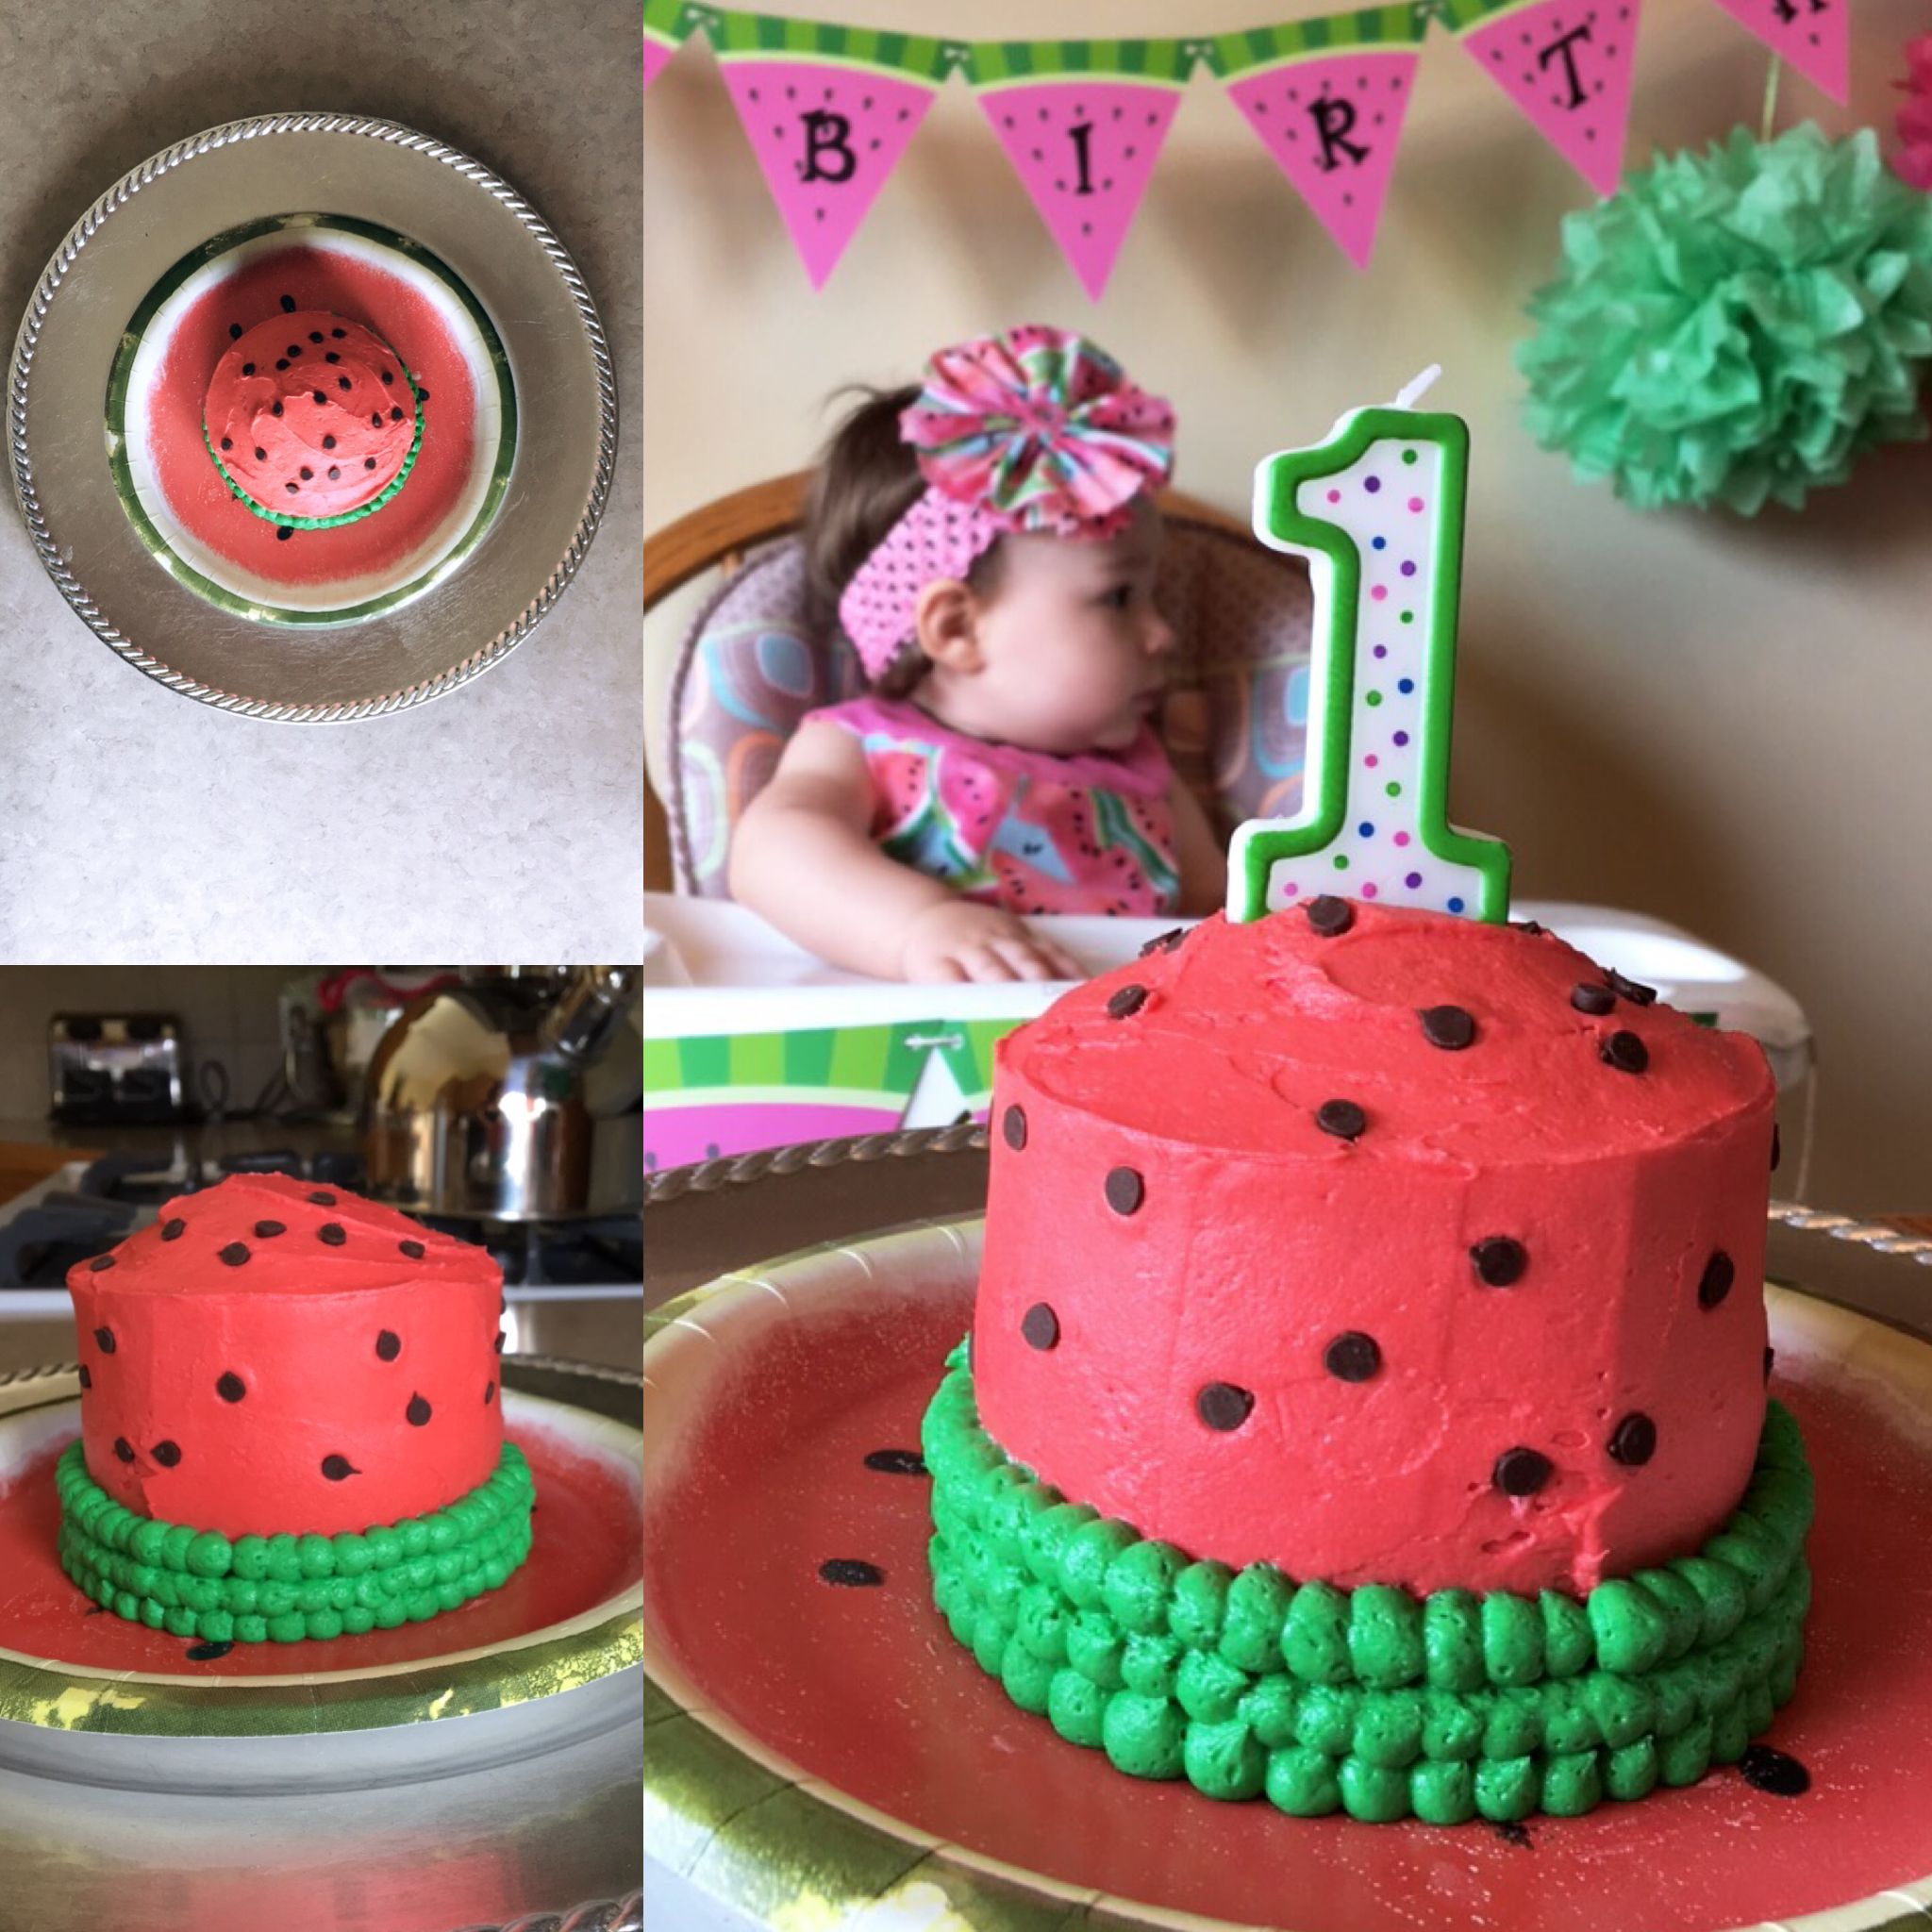 Remarkable Watermelon Themed First Birthday Party Smash Cake With Images Funny Birthday Cards Online Inifofree Goldxyz